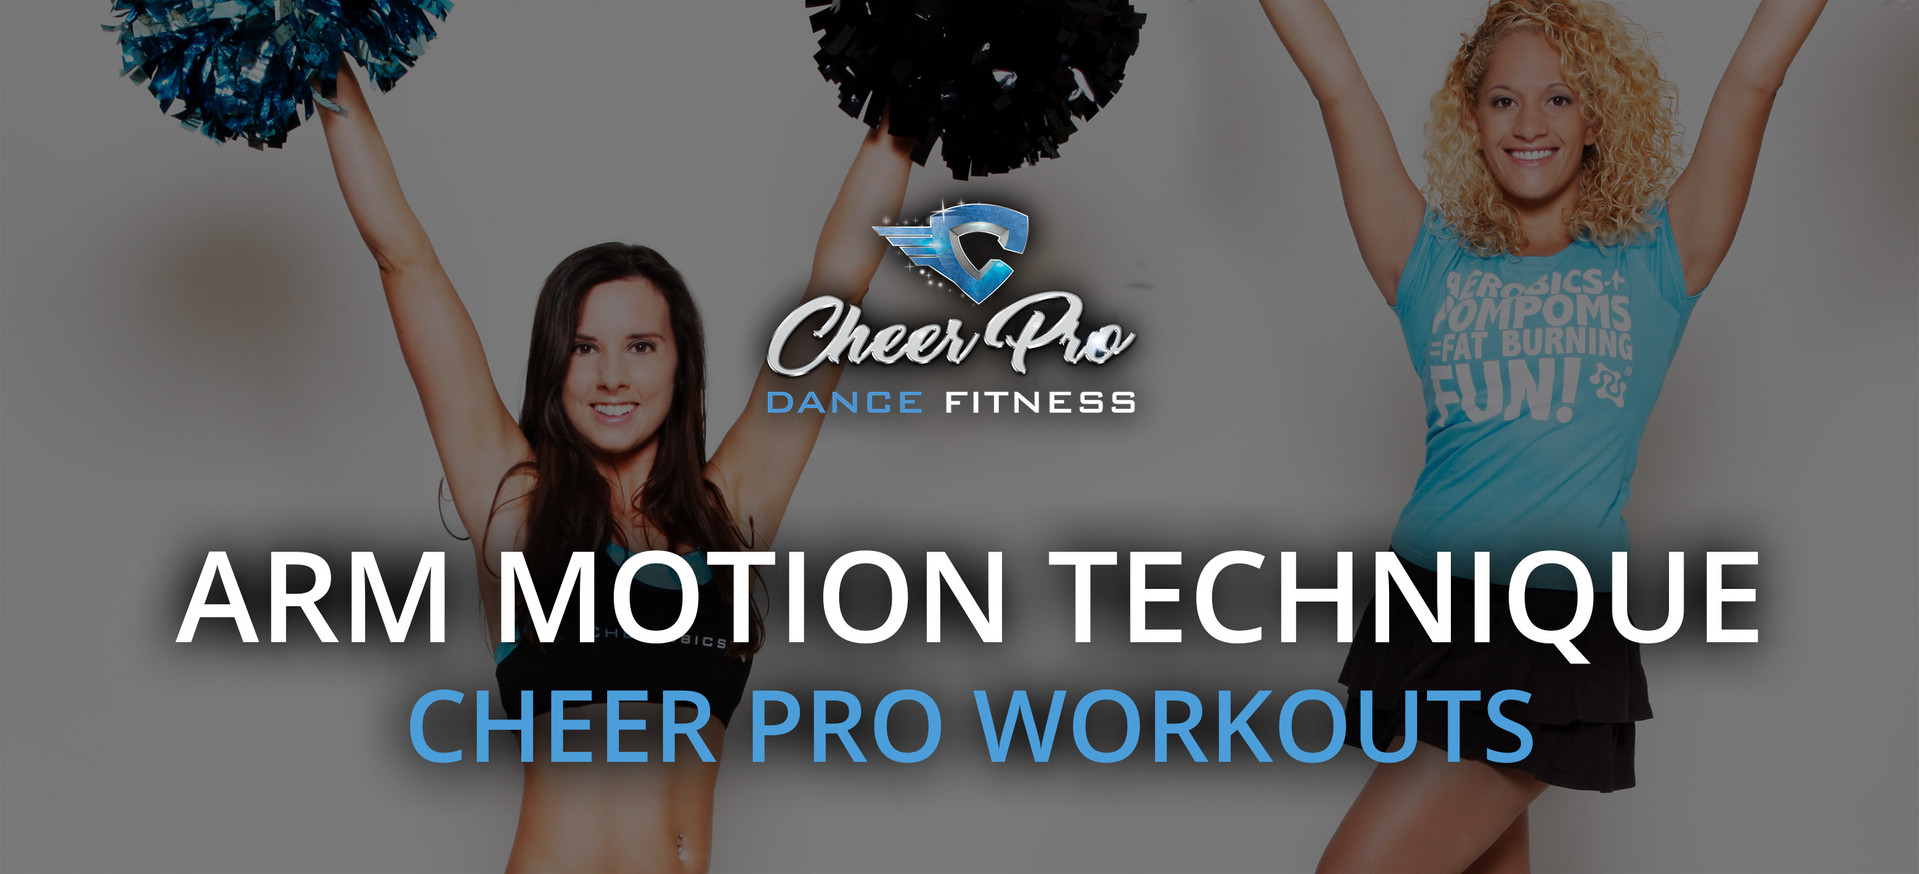 Cheer Motions